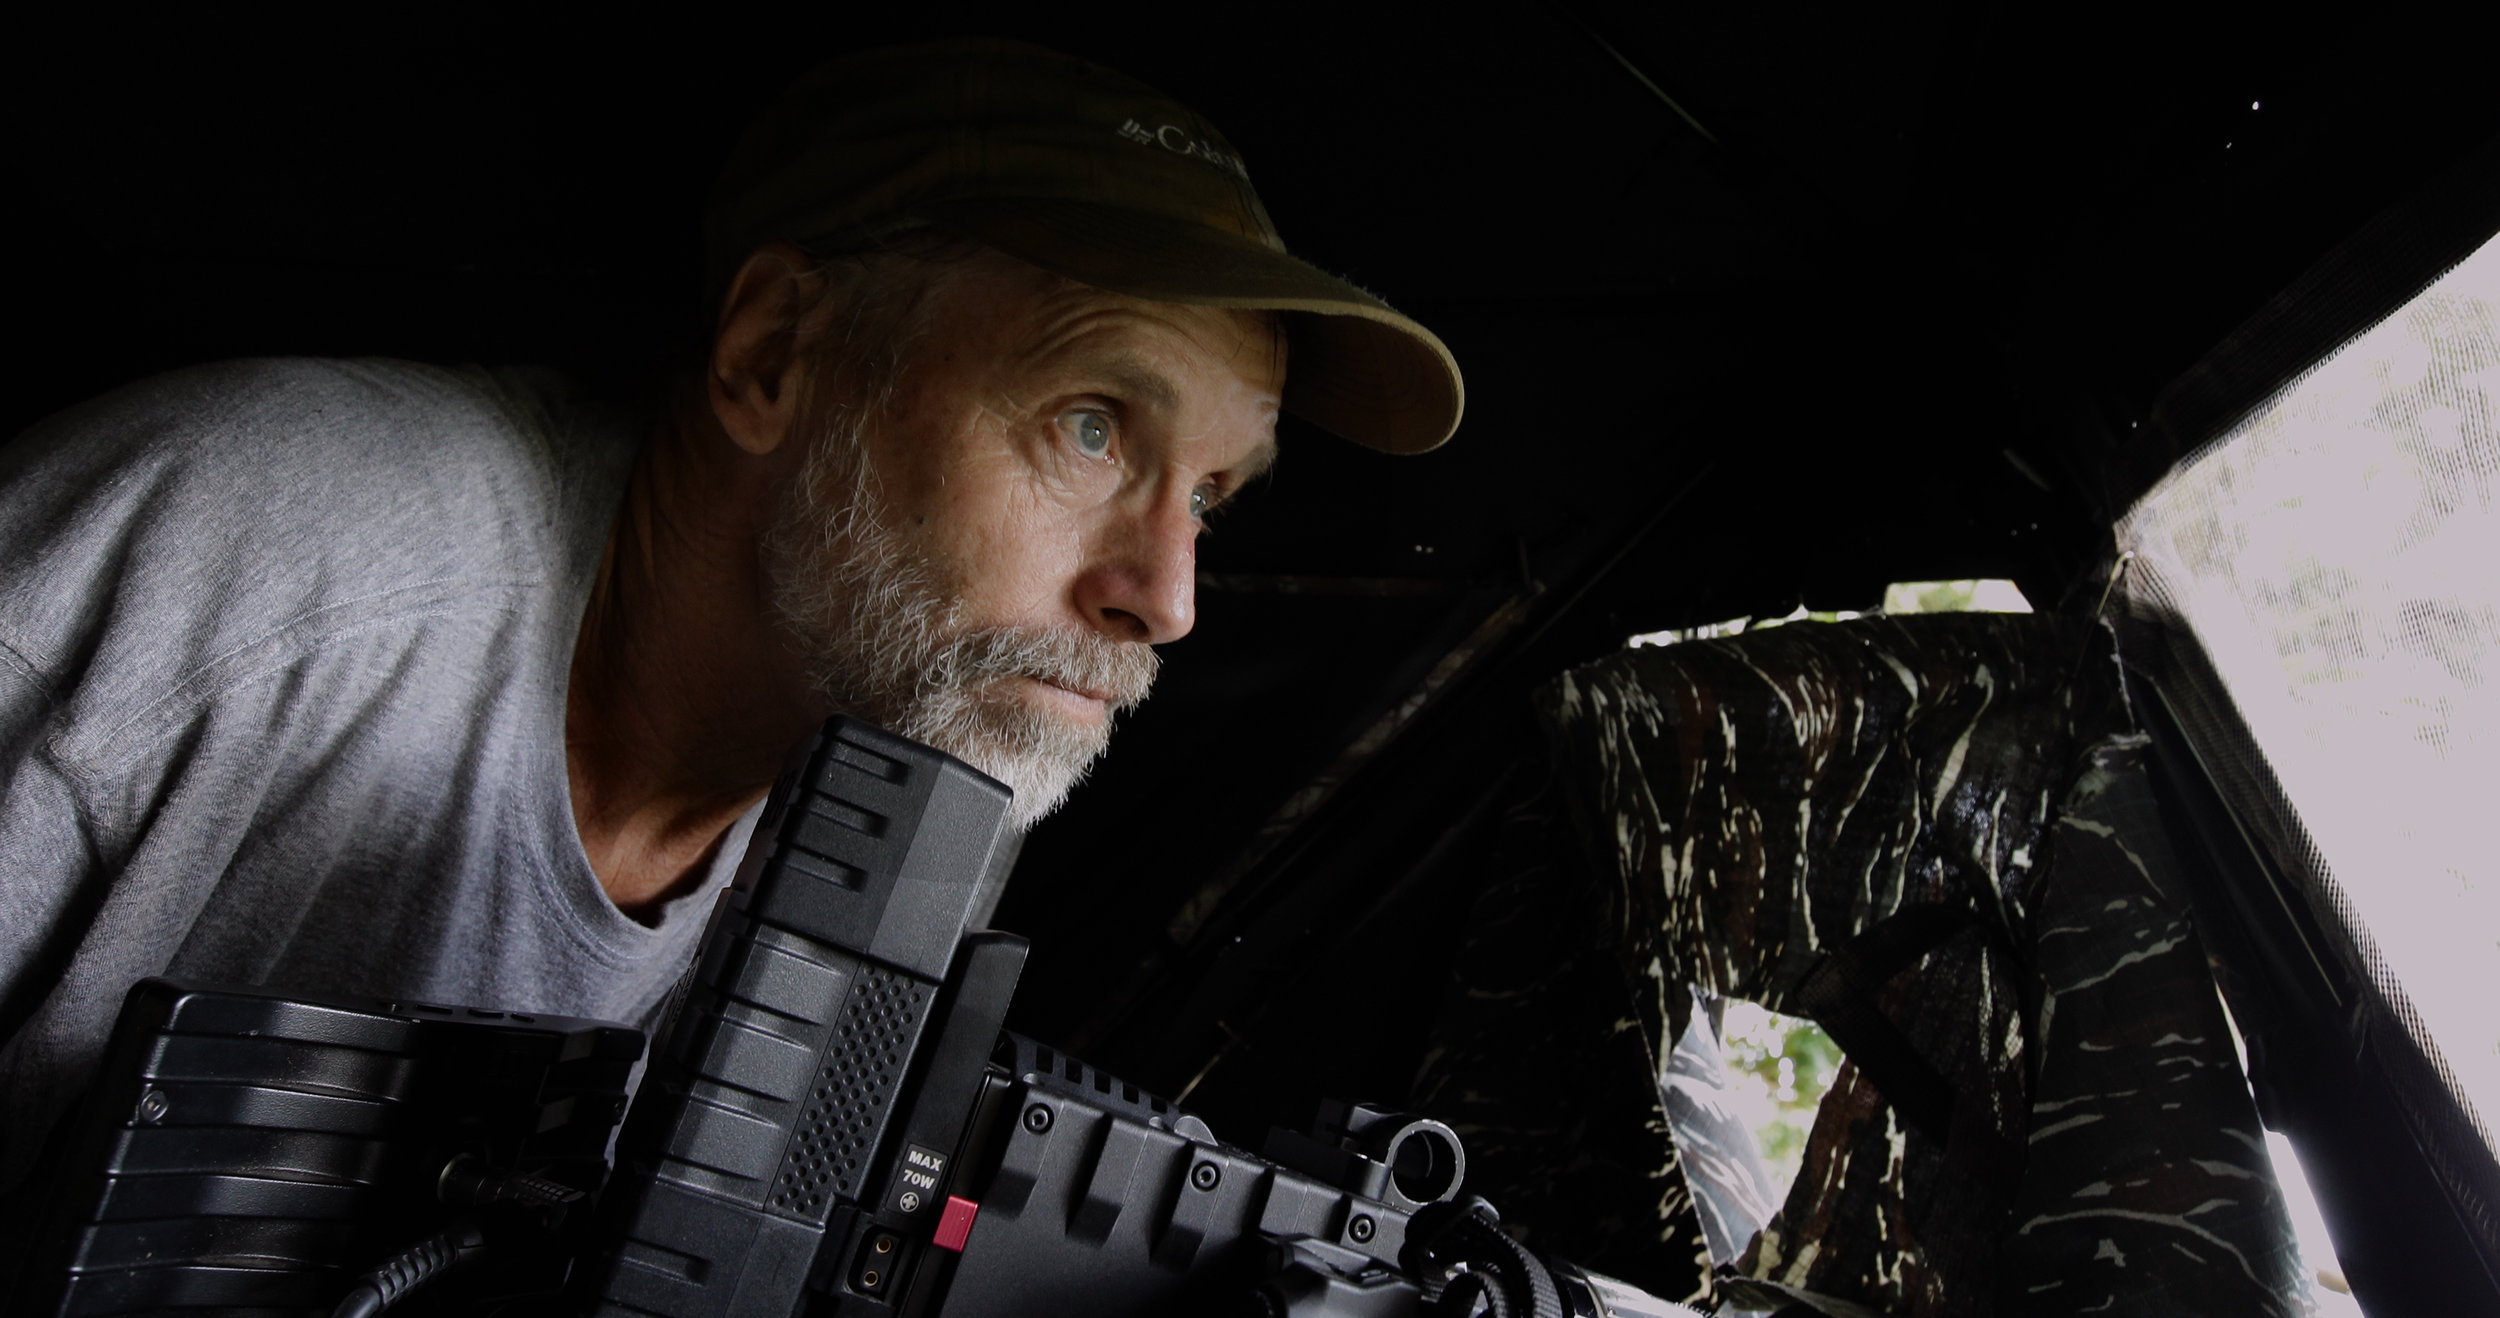 NEIL RETTIGWildlife Cinematographer - Neil Rettig is a world renowned 6-time Emmy Award winning cinematographer with over 40 years experience filming rare and endangered species world wide. Over the past four decades, Rettig has contributed to the production of hundreds of films, including IMAX Productions, National Geographic Specials, and Science Documentaries. His knowledge of raptors, especially the rare forest Eagles, has resulted in scientific publications and a greater understanding of critically endangered species such as the Philippine and Harpy Eagles. Neil's fieldwork has been instrumental in the conservation of rare and threatened animals, the establishment of protected ecosystems around the world, and breeding projects for endangered species. Neil has been acclaimed for his creative eye, artistic composition, lightning fast ability to capture the moment, and intimacy with the subject.